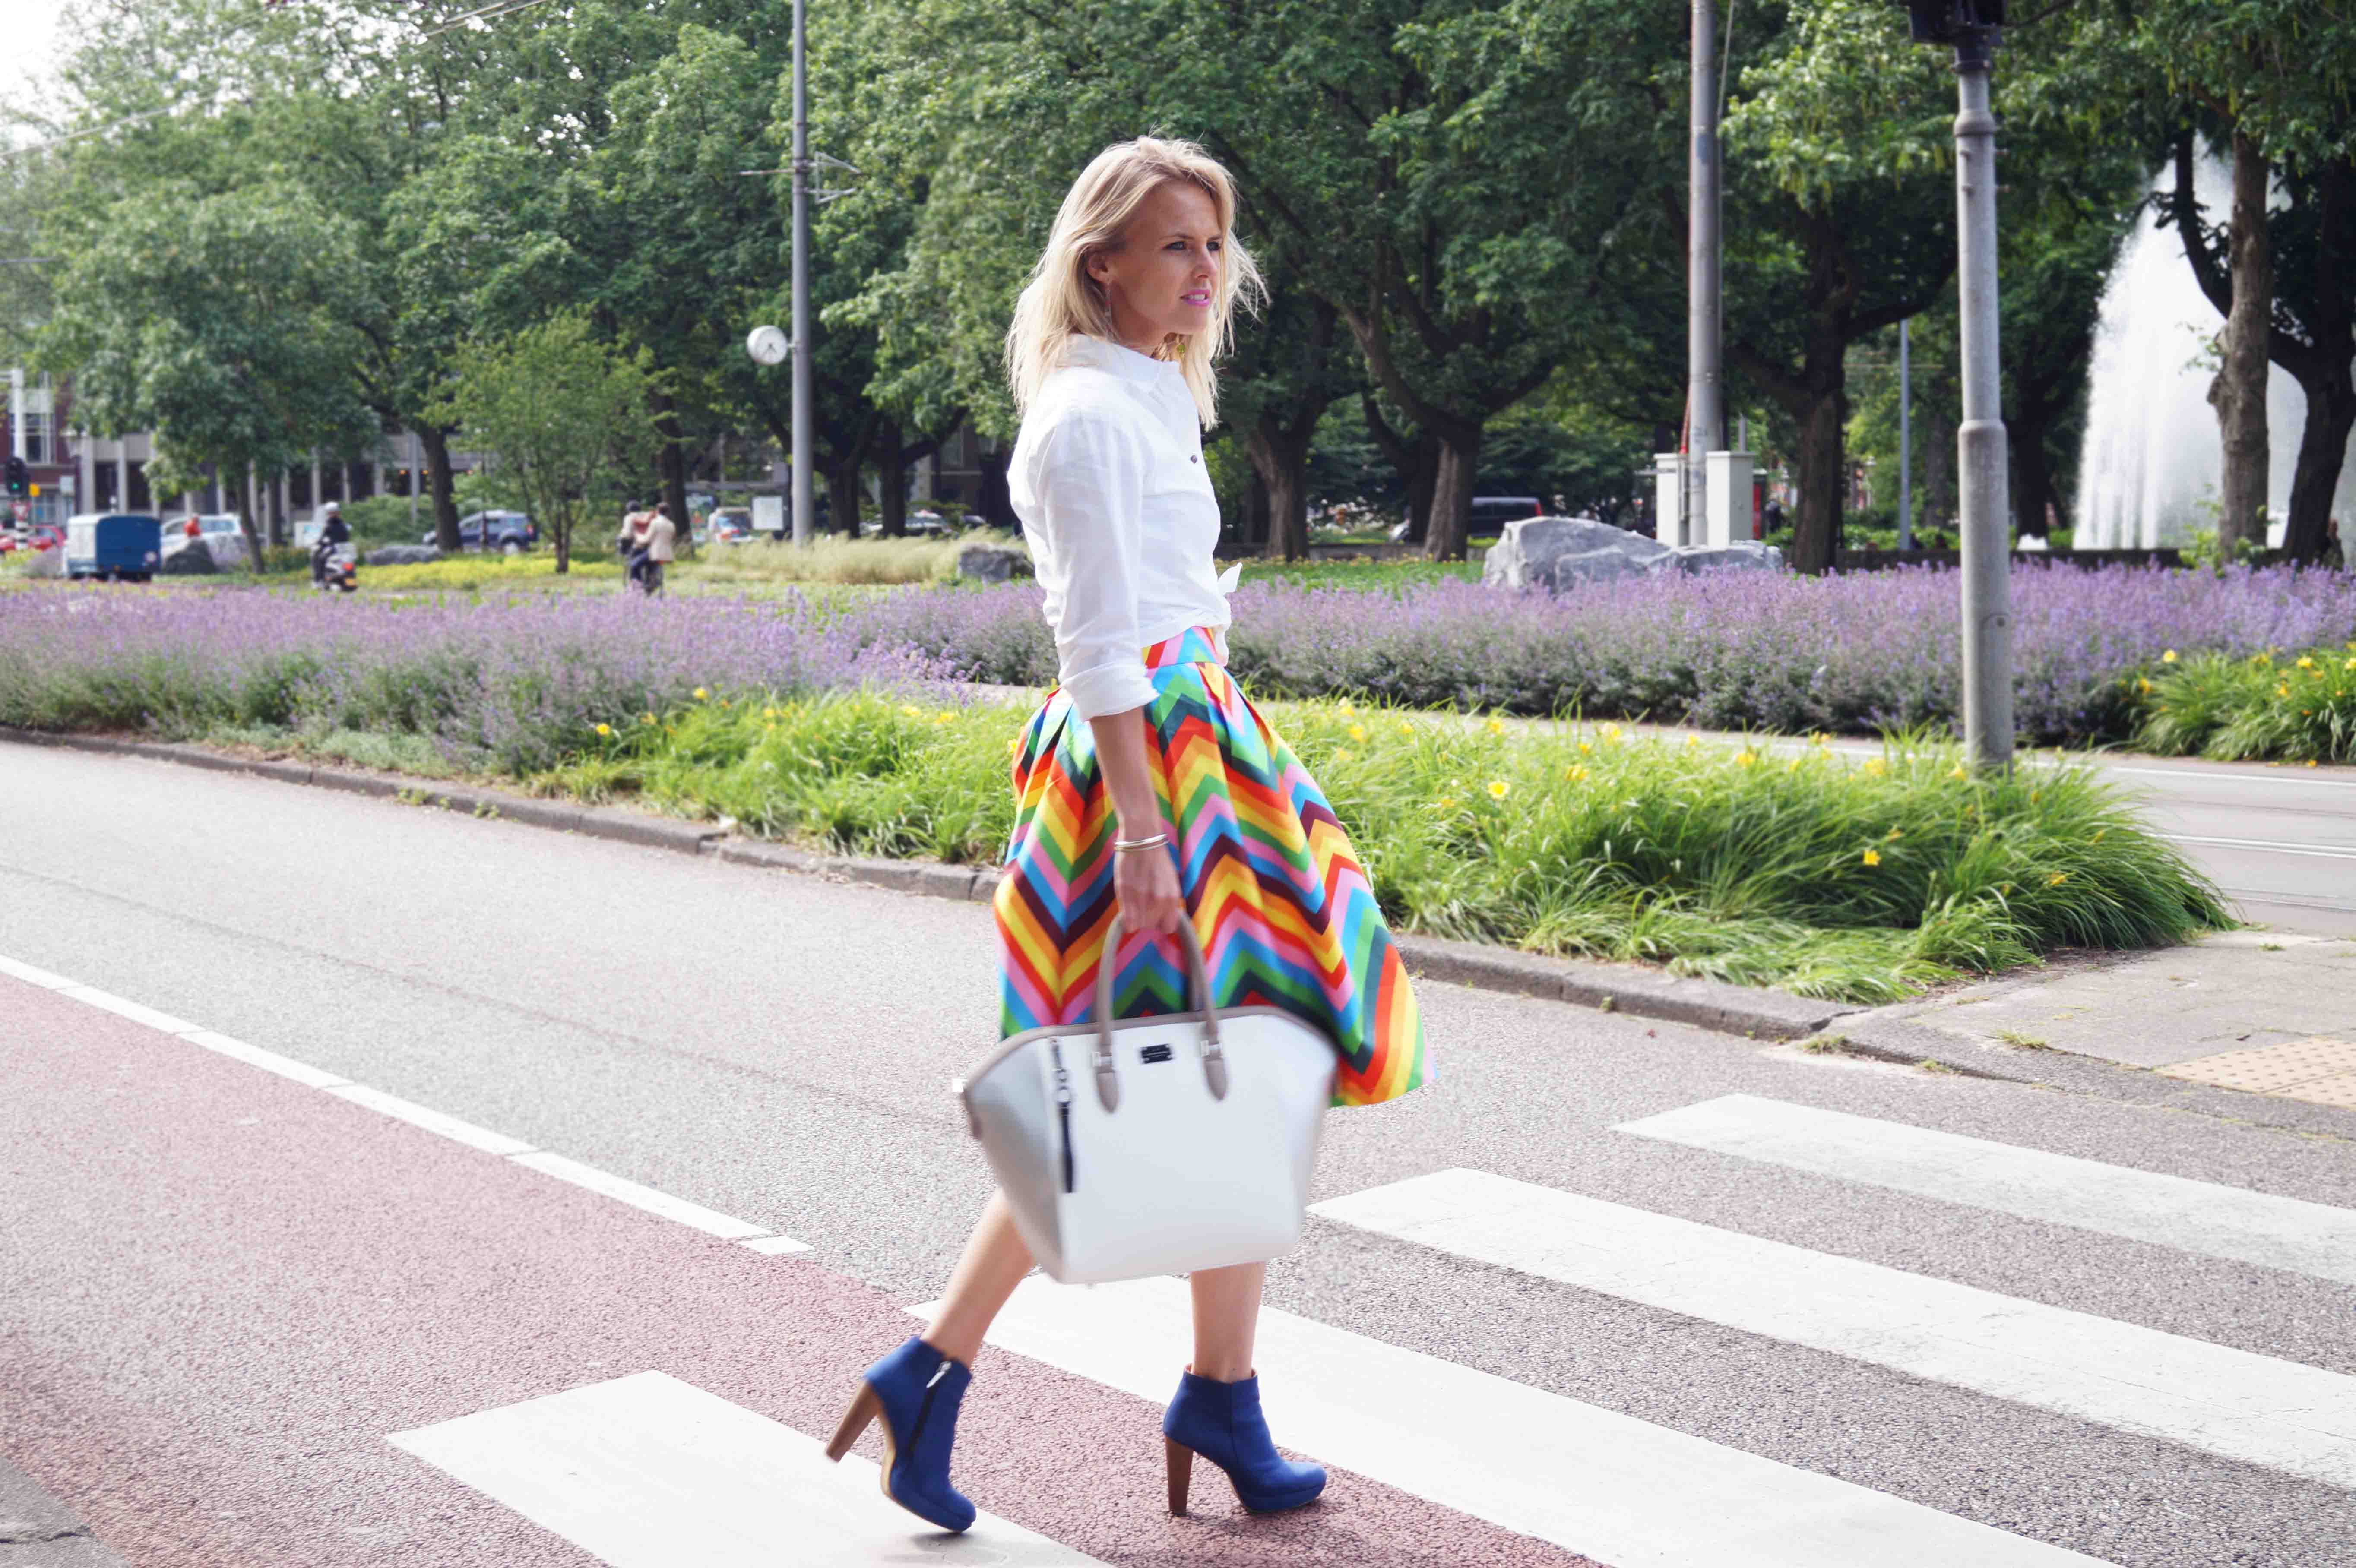 Bag at You - Fashion Blog - Paul's Boutique London bags - Tassen SS15 - Summer OOTD